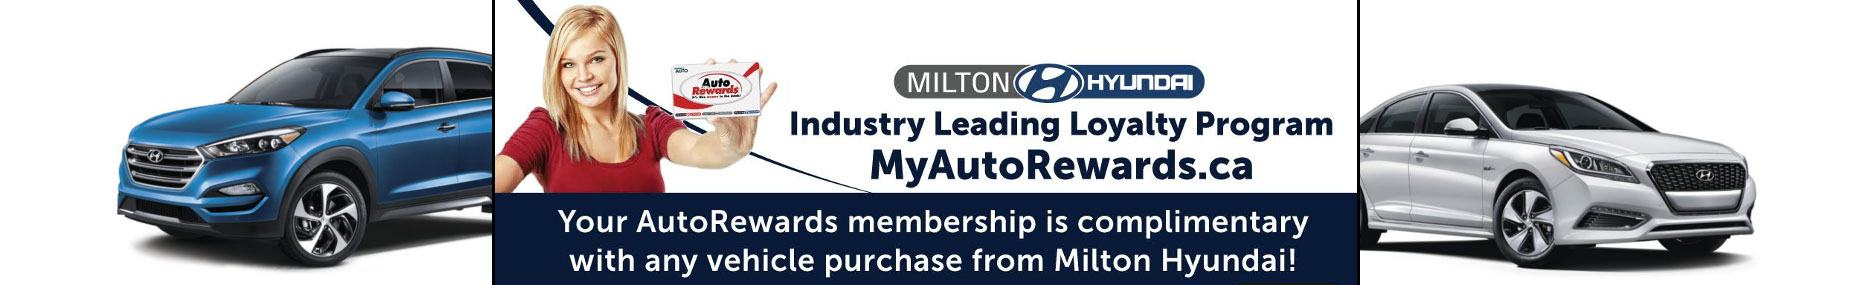 MH-AutoRewards-FeaturedBanner